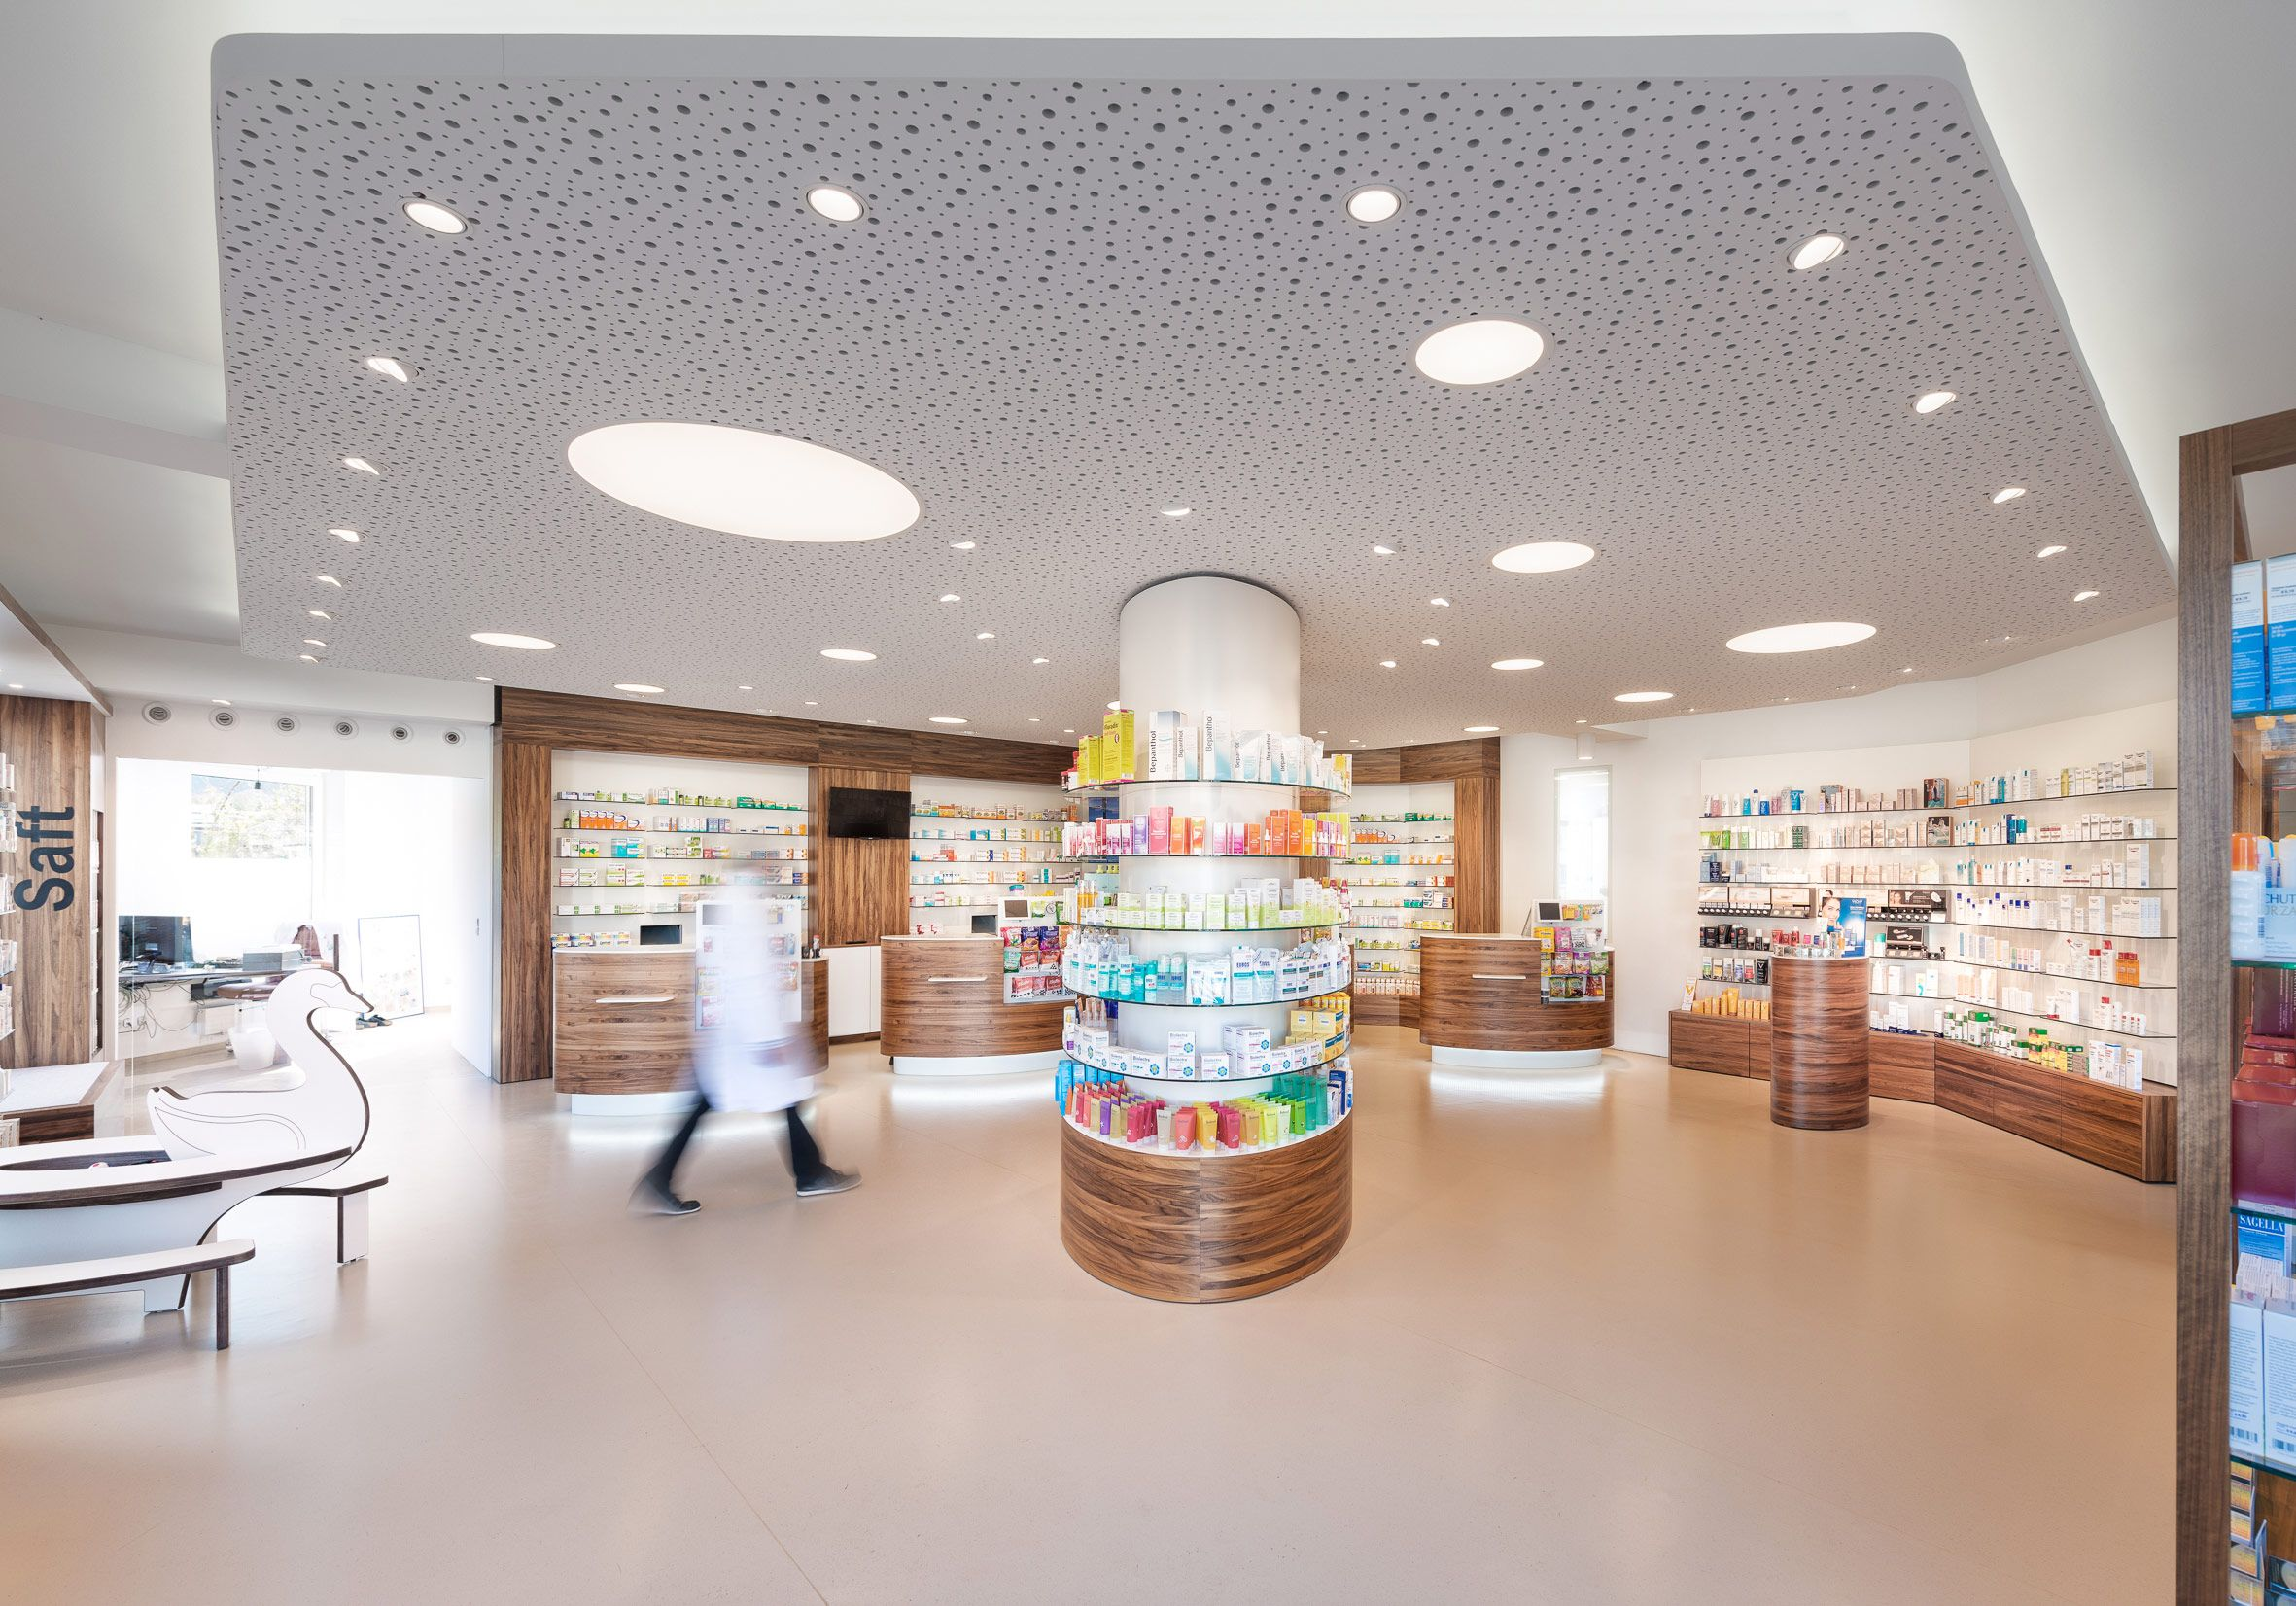 PRODUCTS: OIKO + SIGN / SCHWANEN-APOTHEKE BAD MÜNSTEREIFEL, GERMANY / Lighting: PROLICHT GmbH, Götzens, Austria #PROLICHT